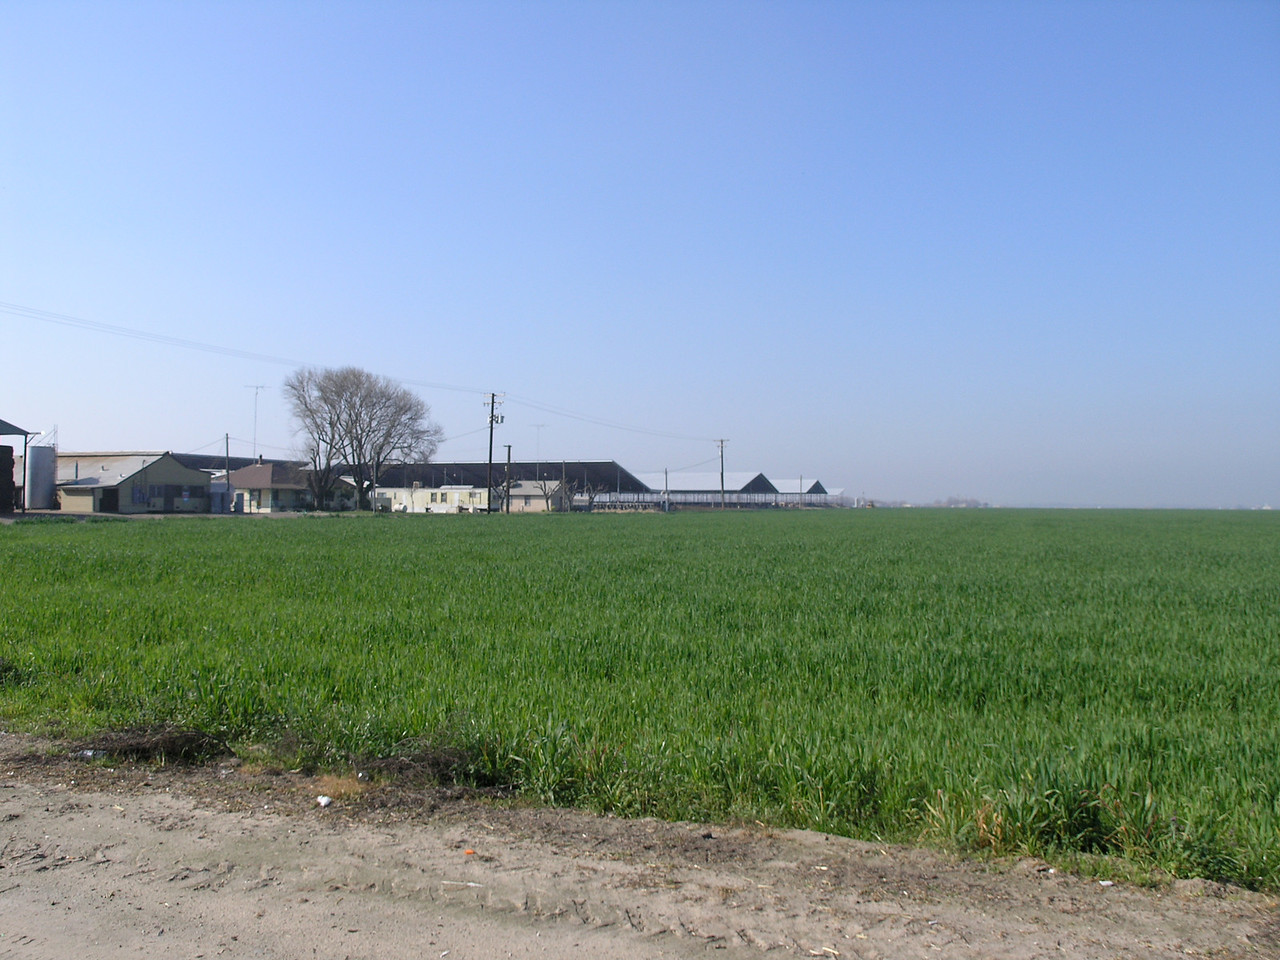 These are building of a fairly good sized dairy. The barns are in the distance.